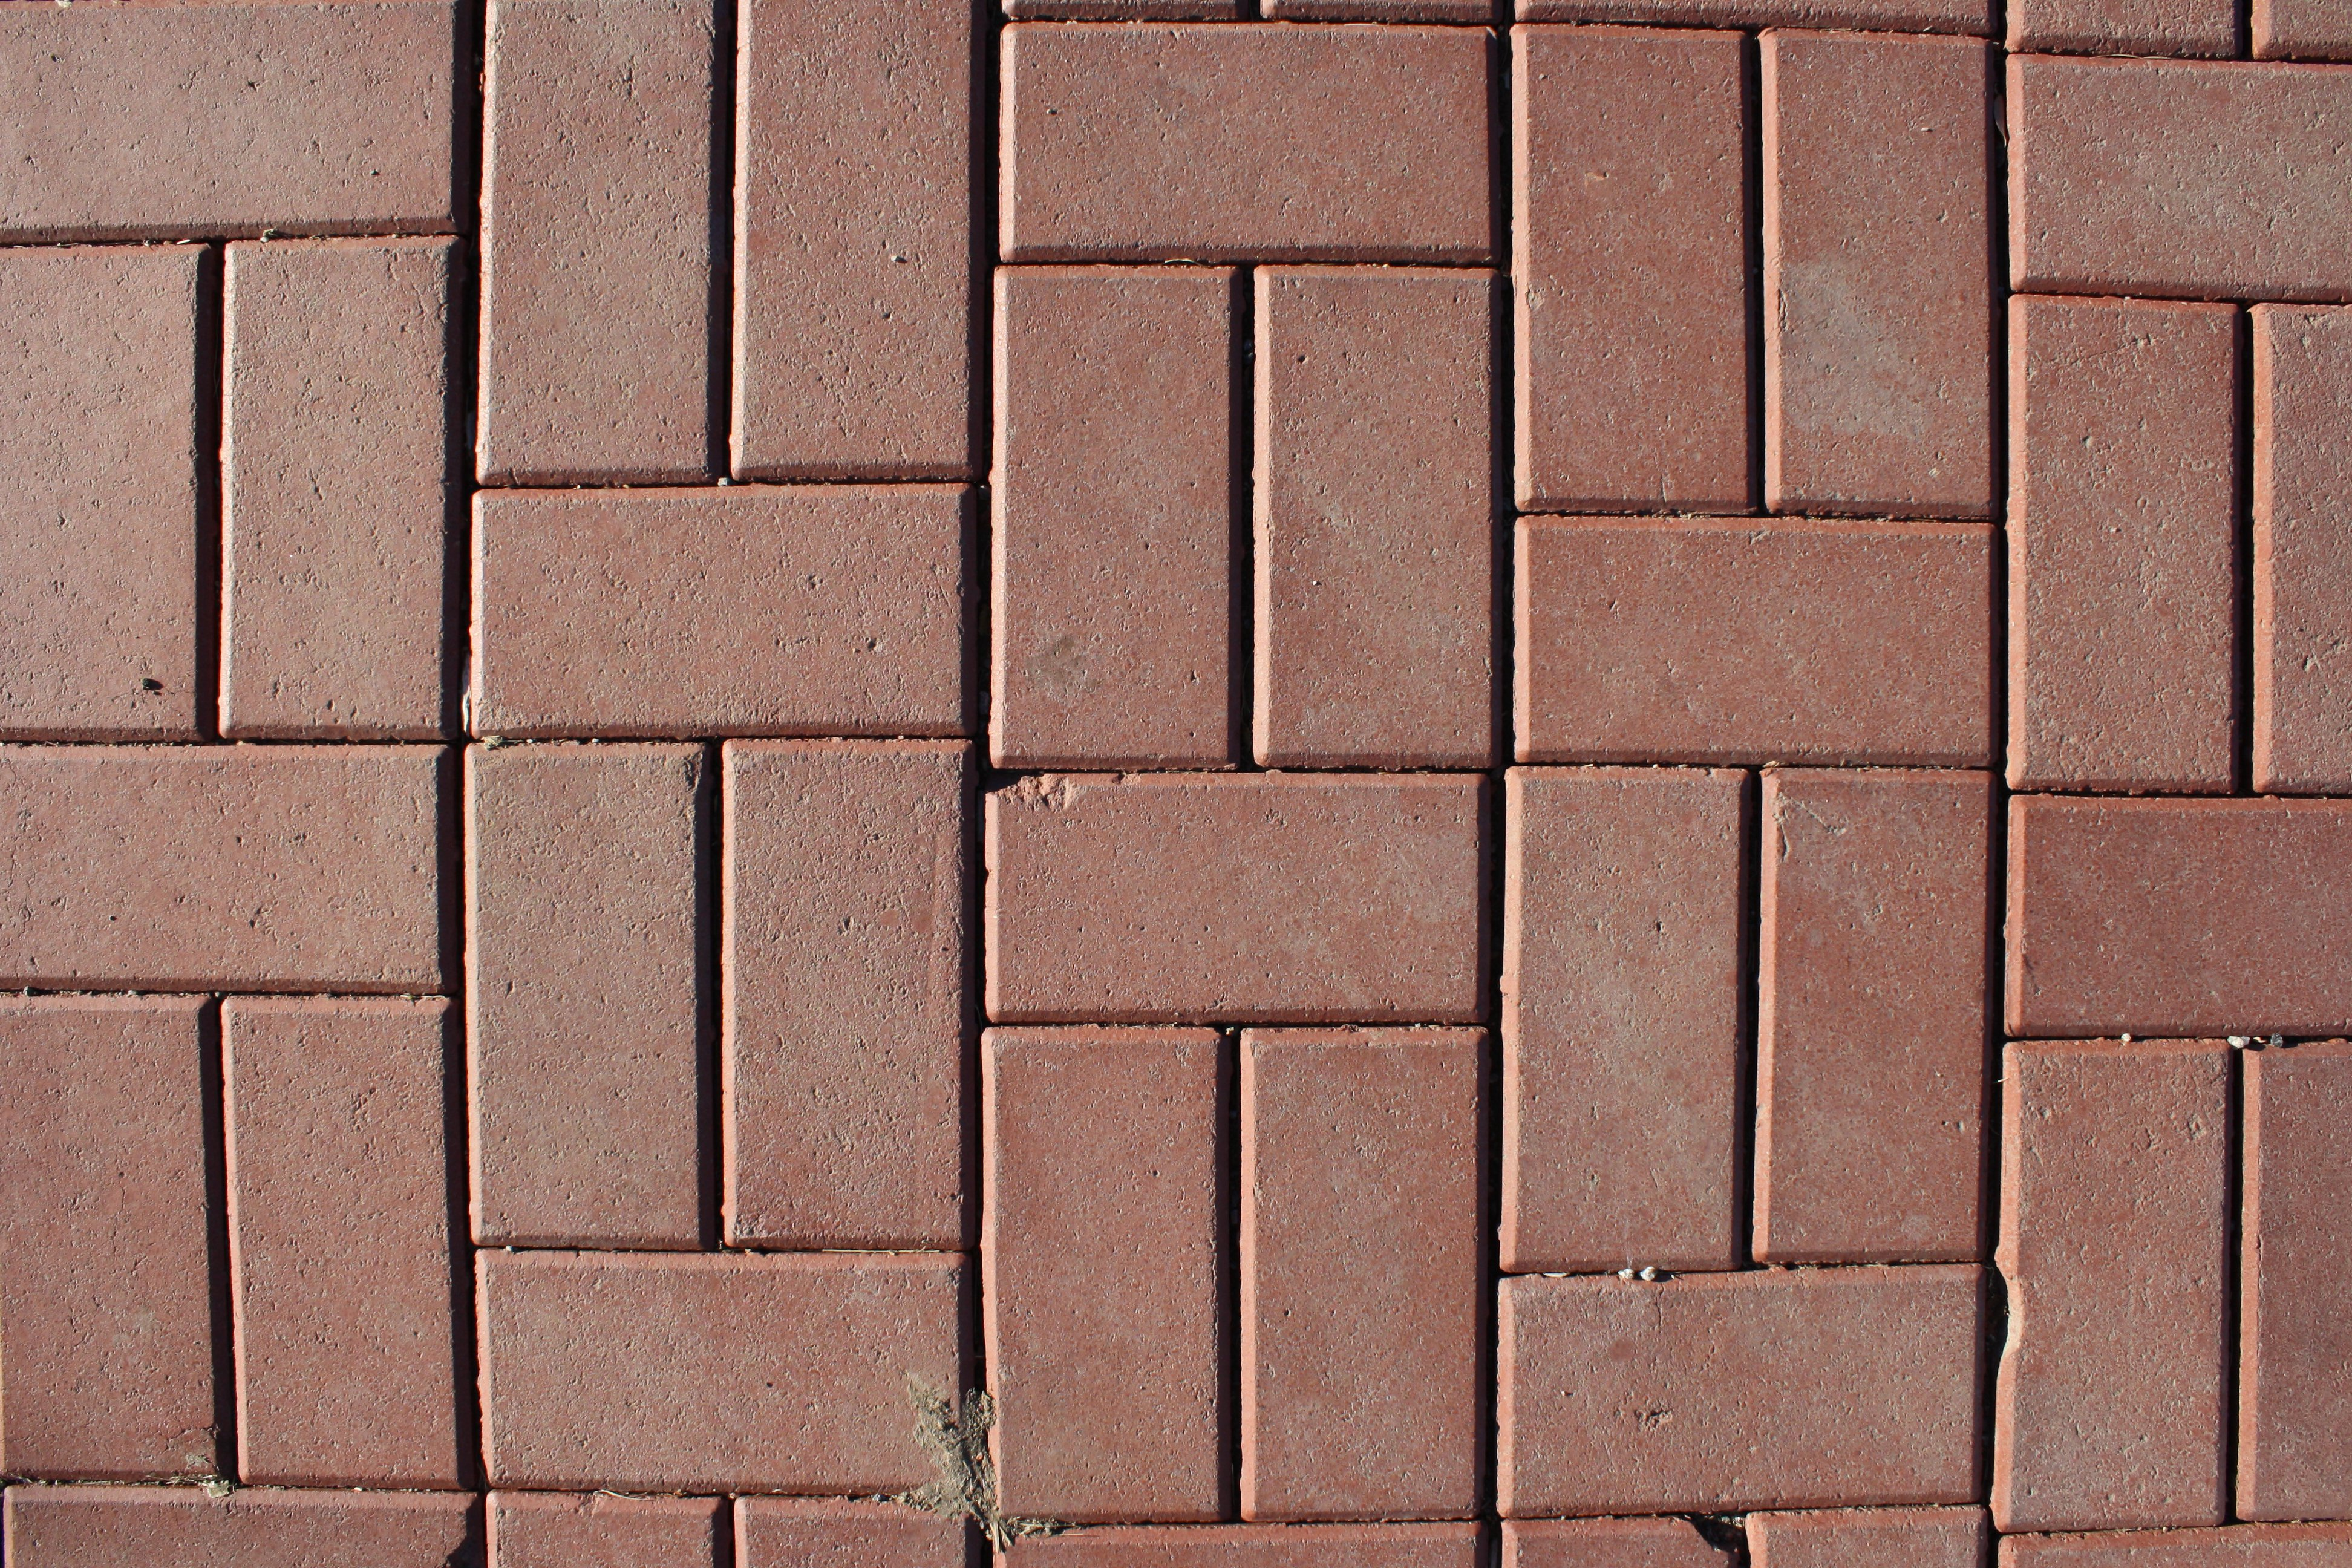 Red Brick Pavers Sidewalk Texture Picture | Free Photograph ...